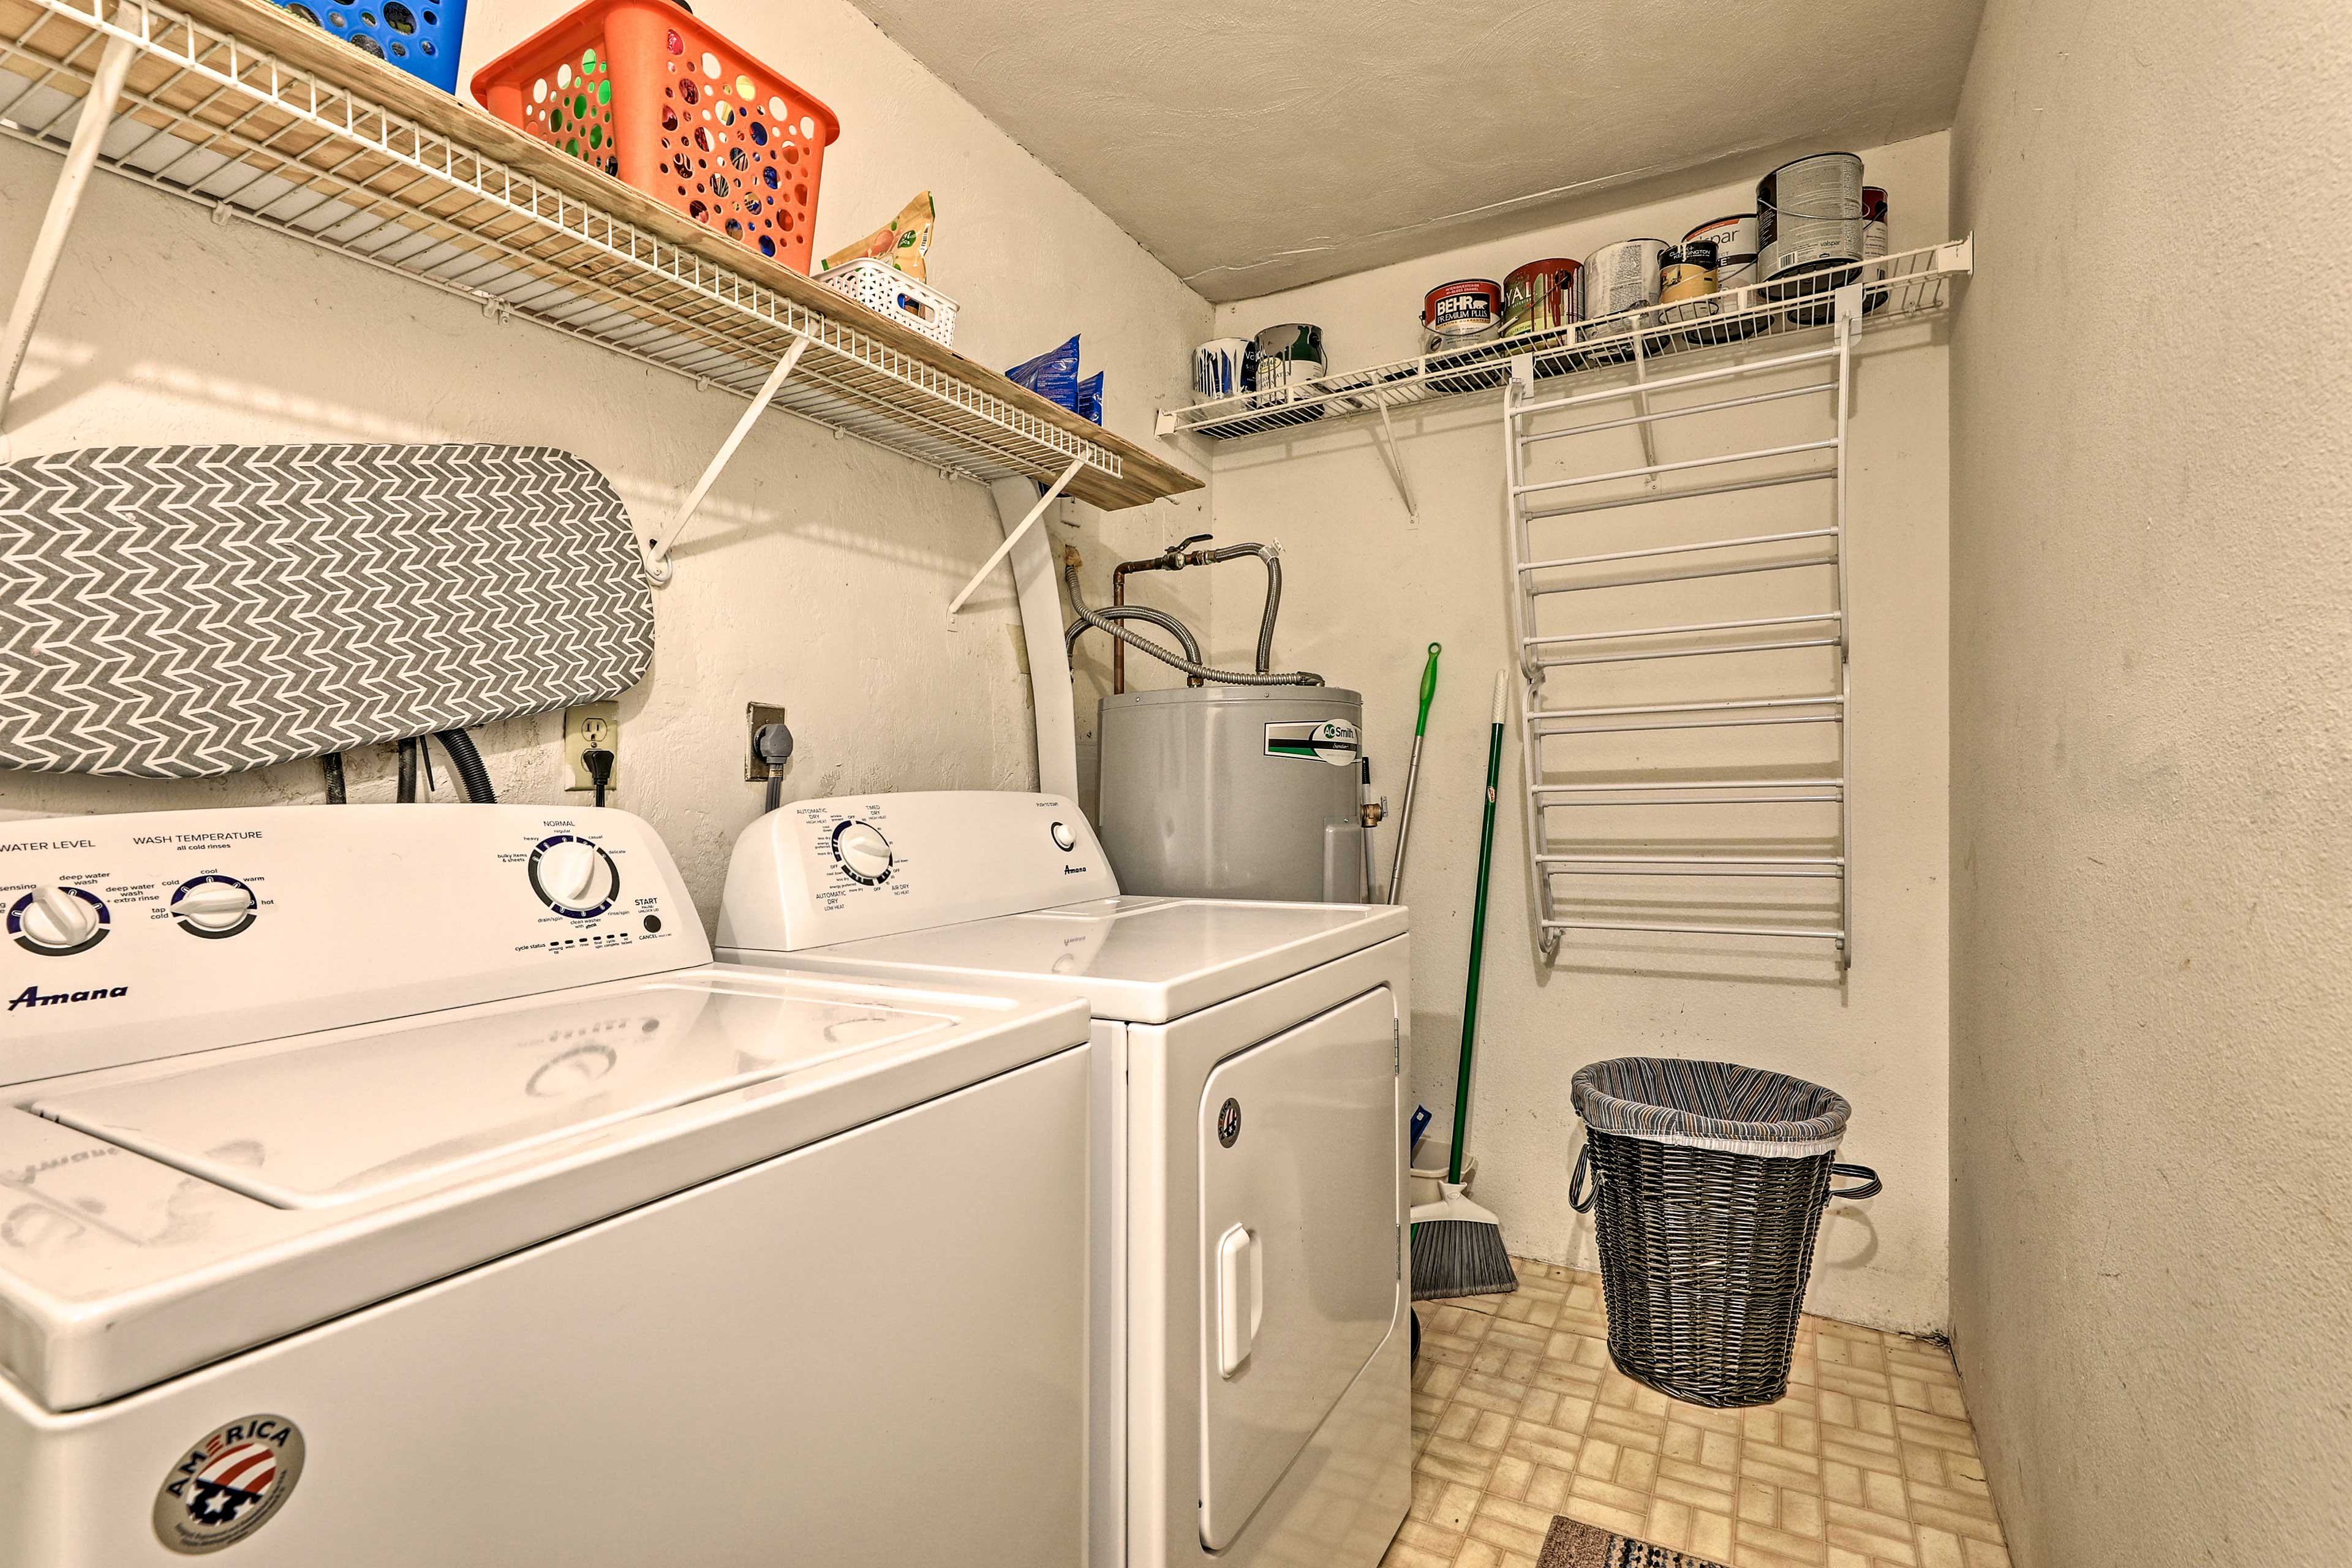 Throw in a load of laundry to keep towels fresh and dry.